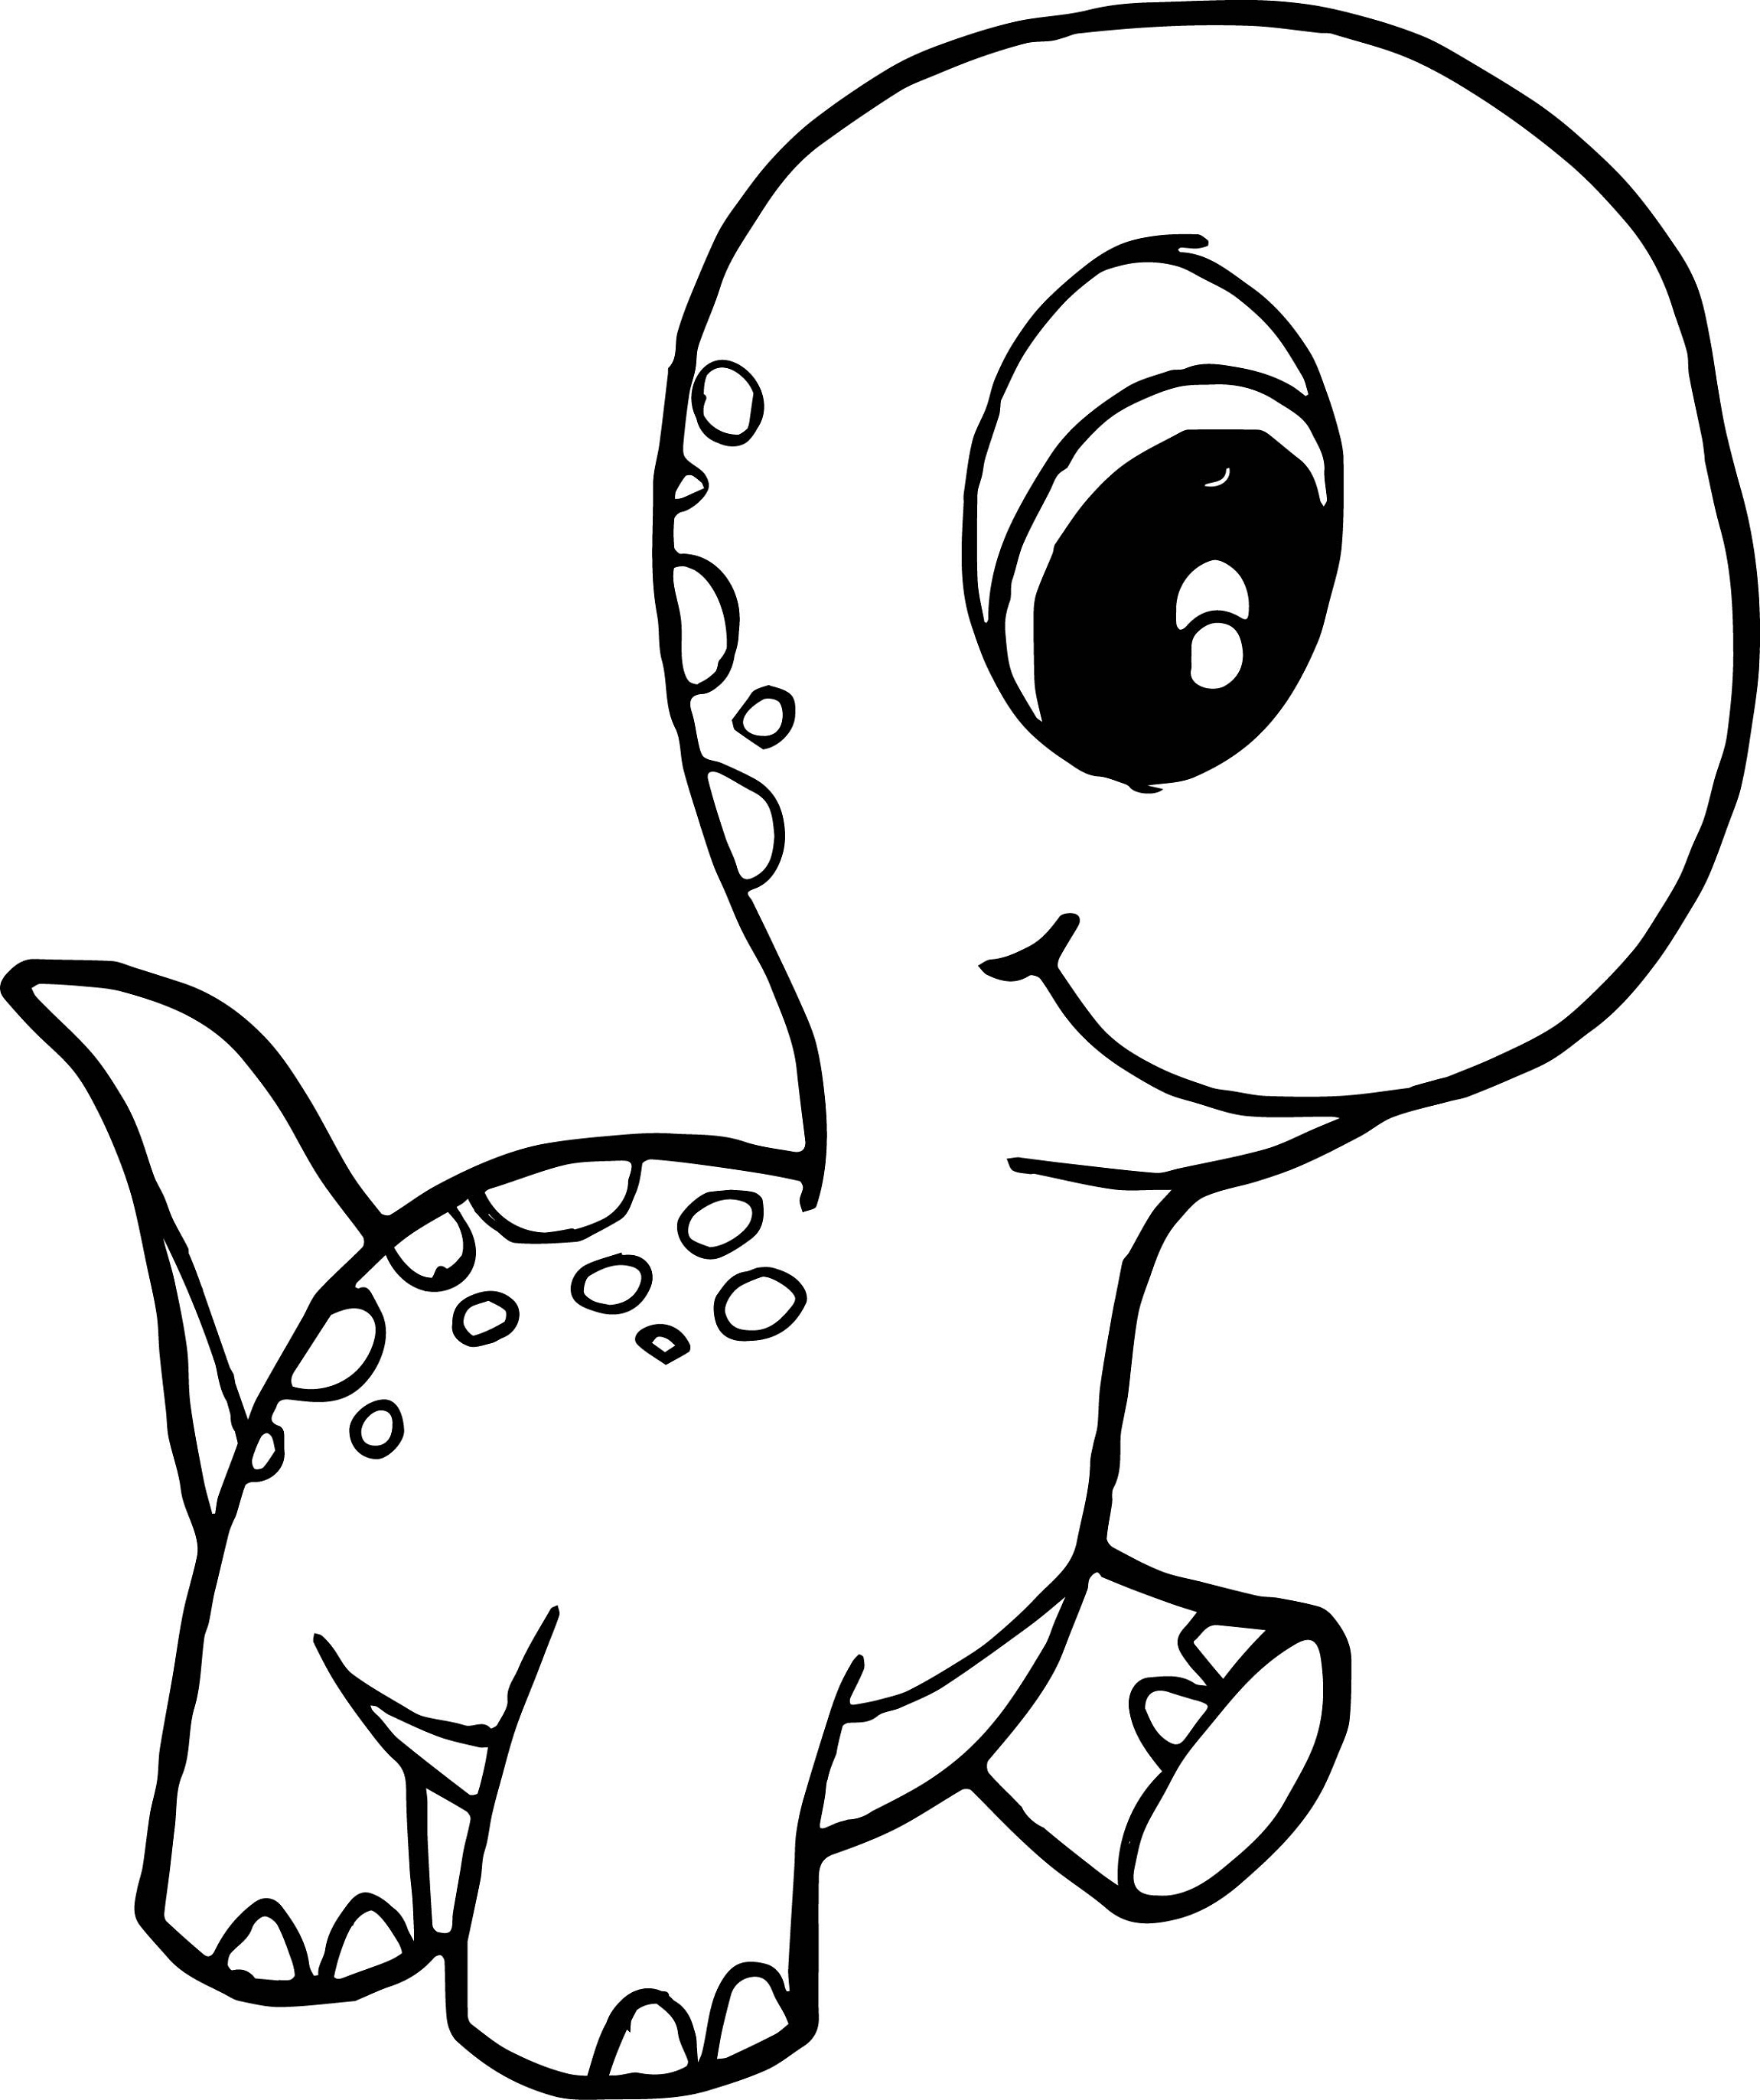 dinosaurs coloring page dinosaur coloring pages to download and print for free coloring page dinosaurs